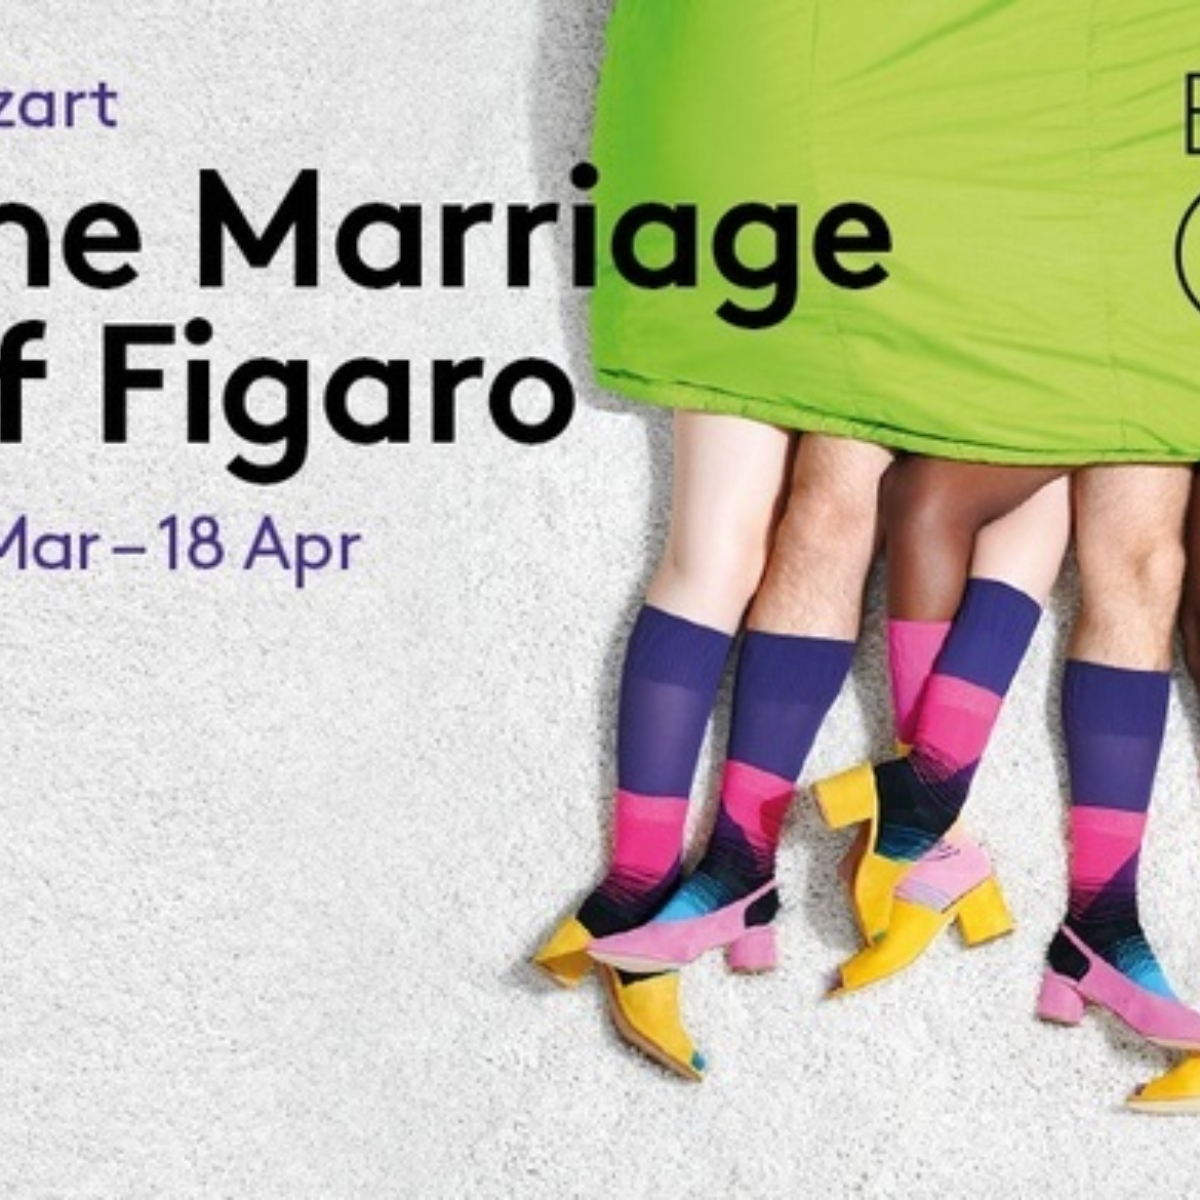 The Marriage of Figaro Images